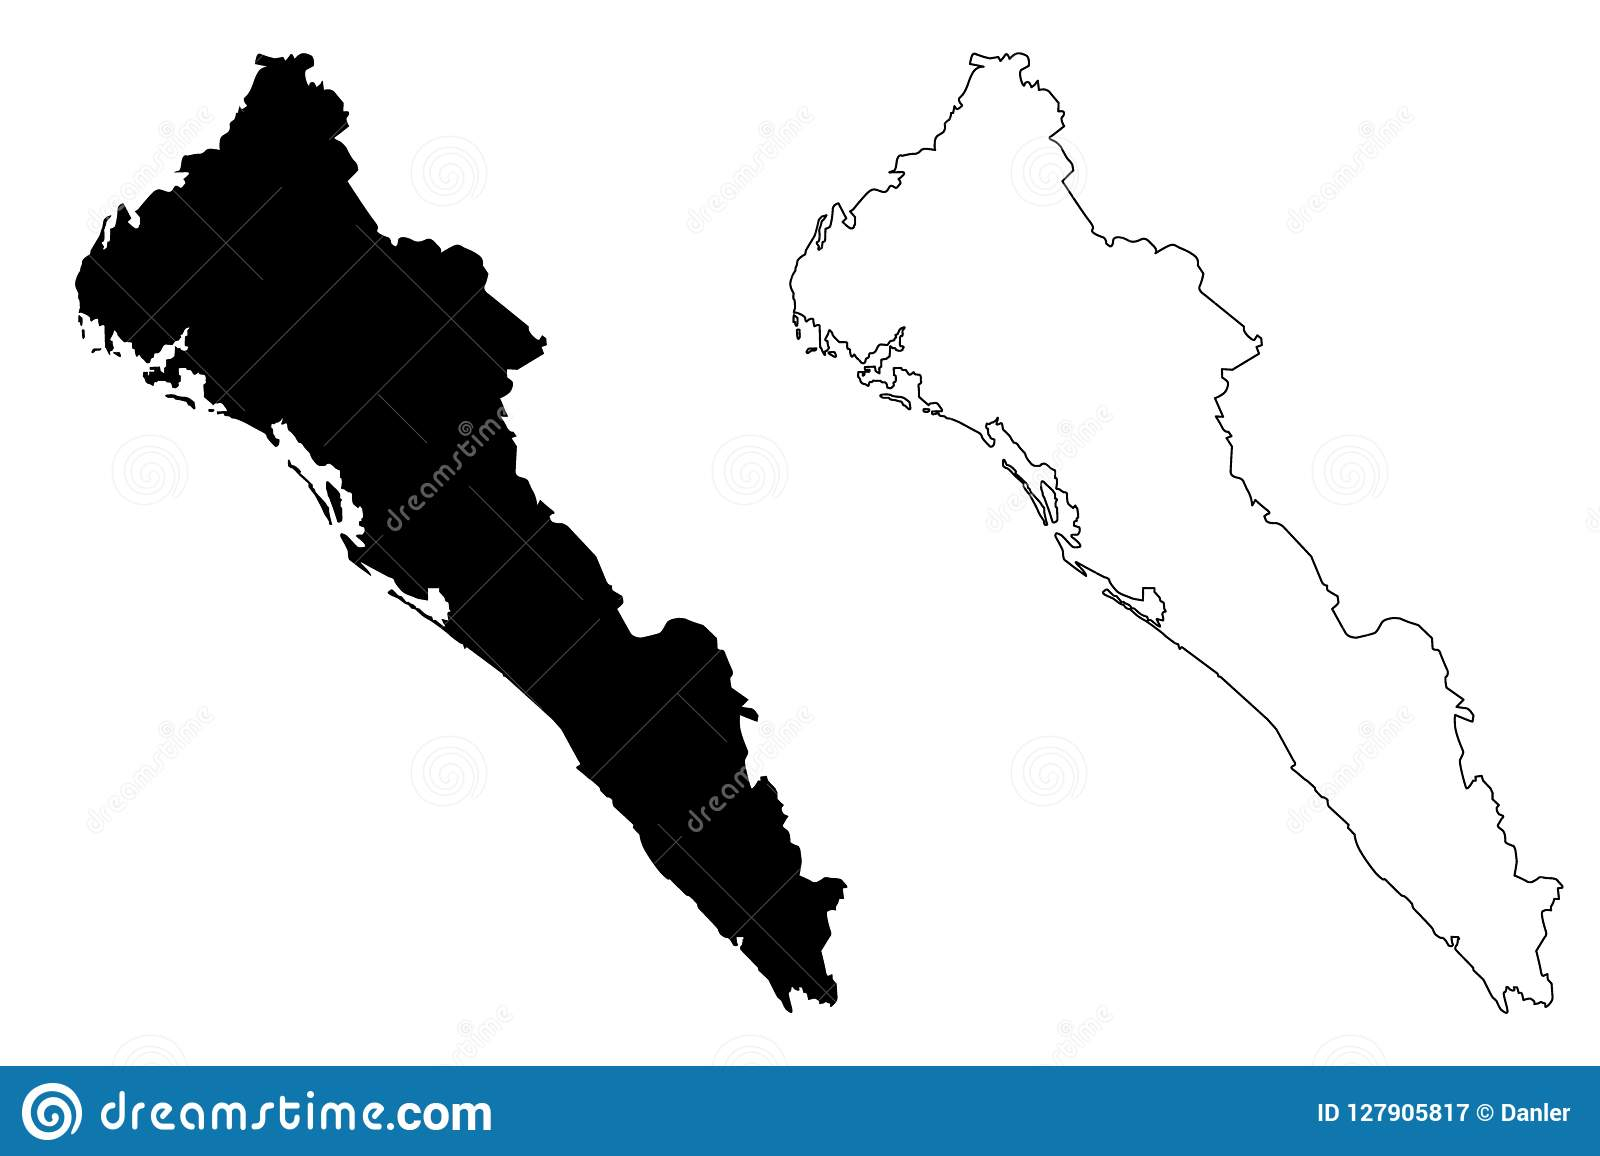 Culiacan Sinaloa Mexico Map.Sinaloa Map Vector Stock Vector Illustration Of Culiacan 127905817